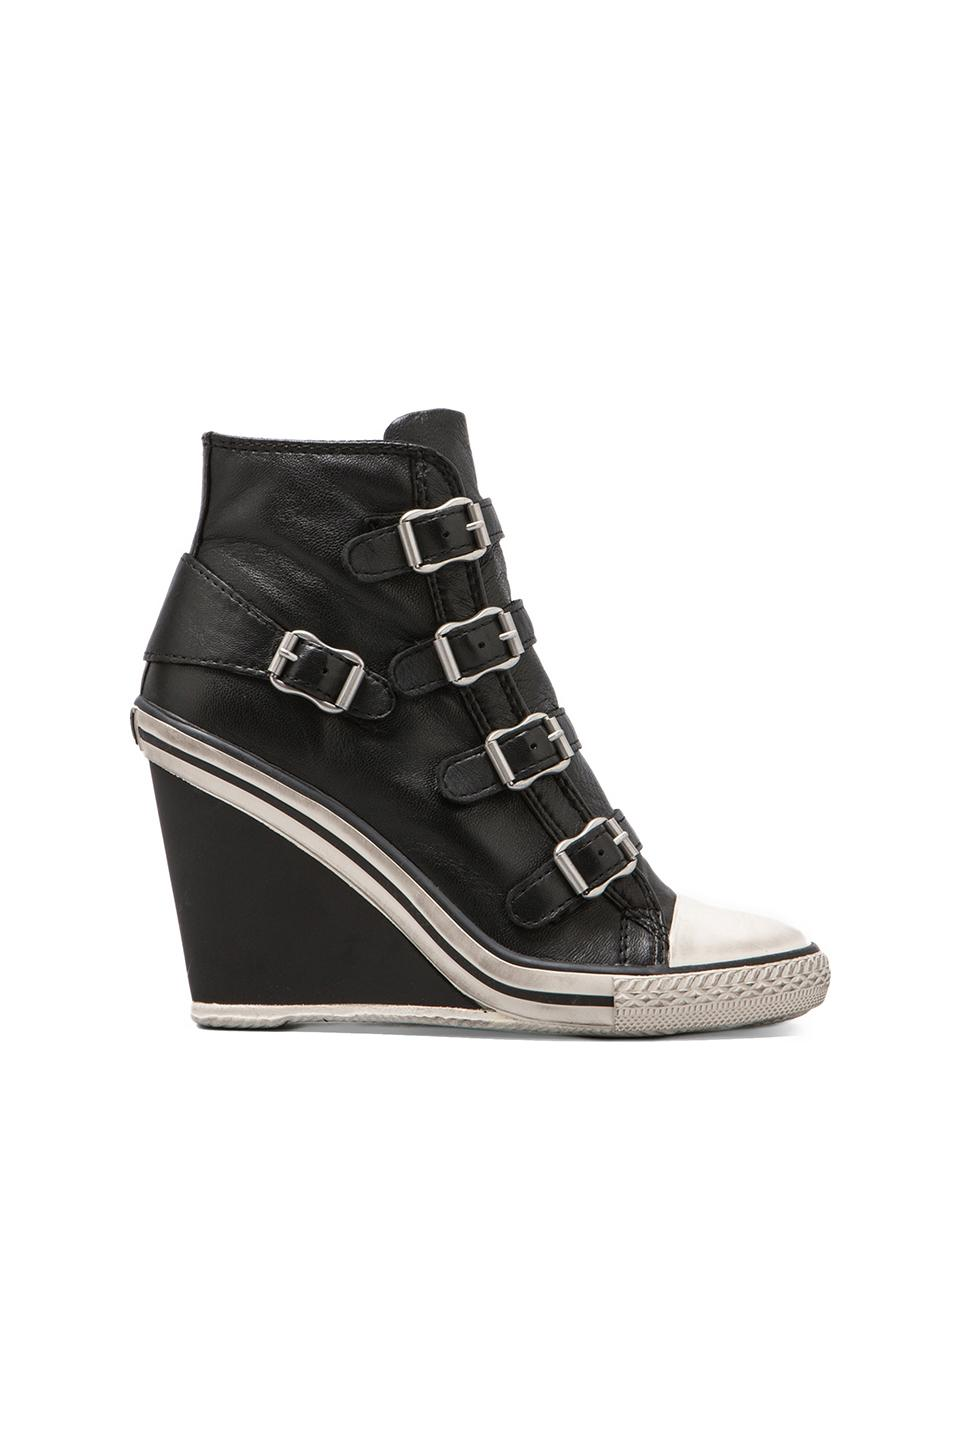 Ash Thelma Wedge Sneaker in Black